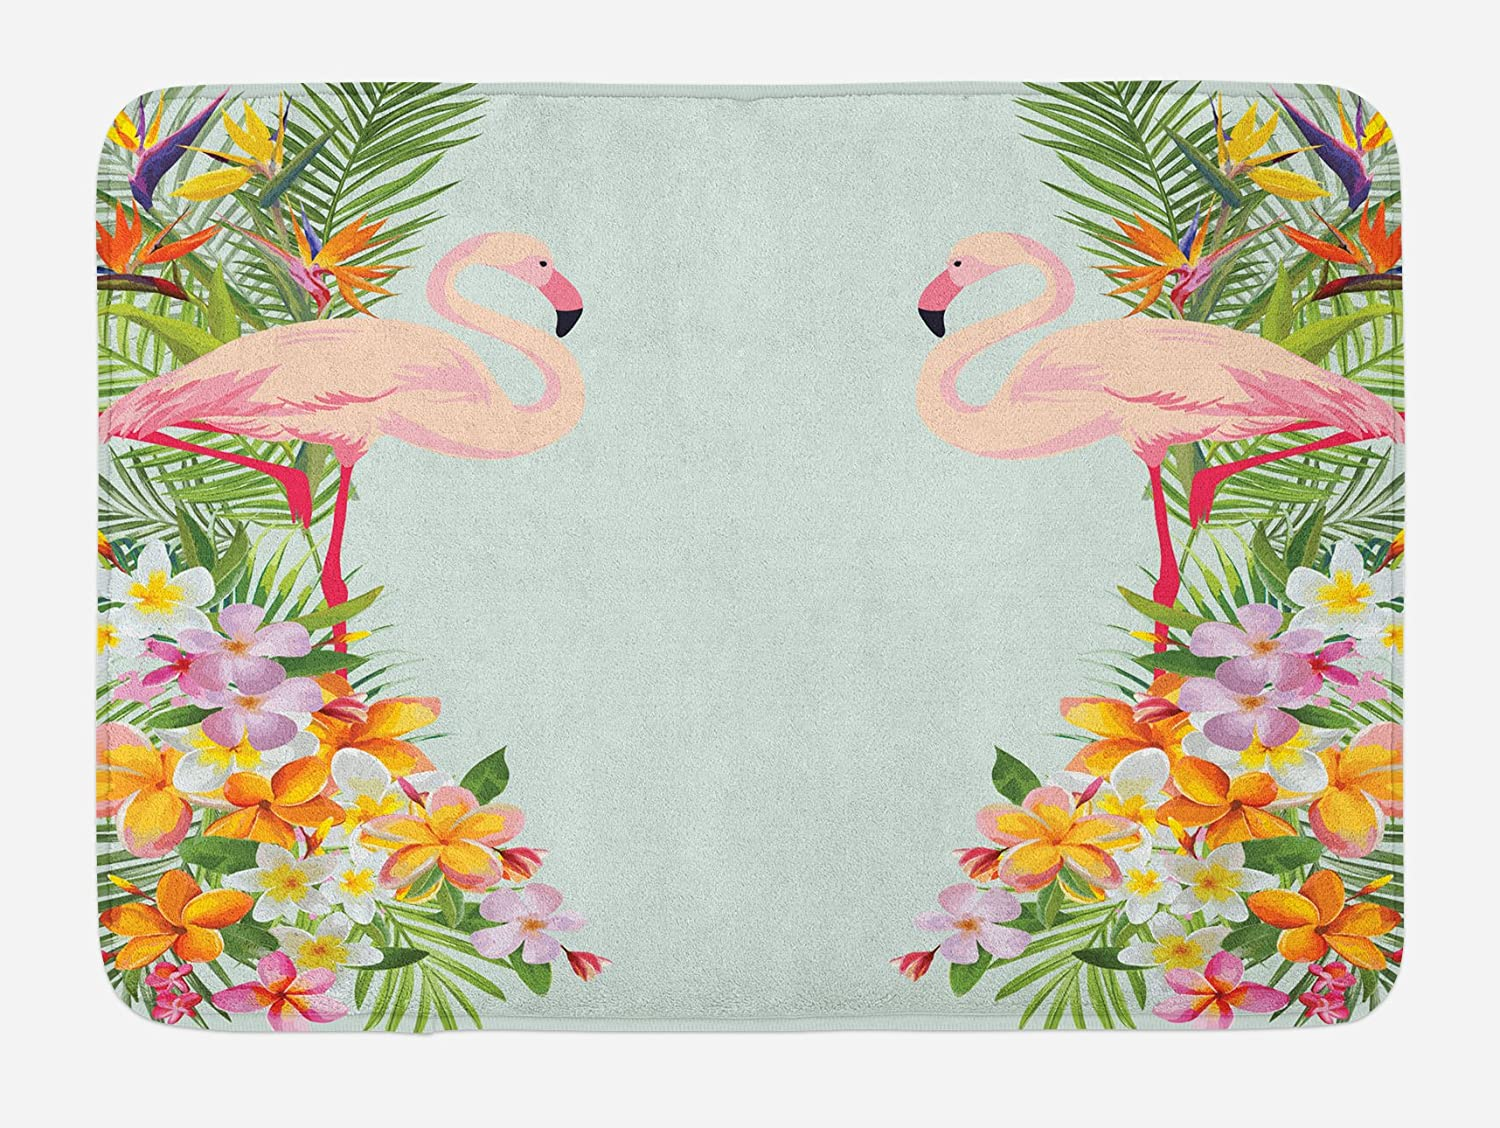 Ambesonne Floral Bath Mat, Flamingo Birds and Tropical Flowers Exotic Hawaiian Wildlife Animals Print, Plush Bathroom Decor Mat with Non Slip Backing, 29.5 X 17.5, Blue Orange